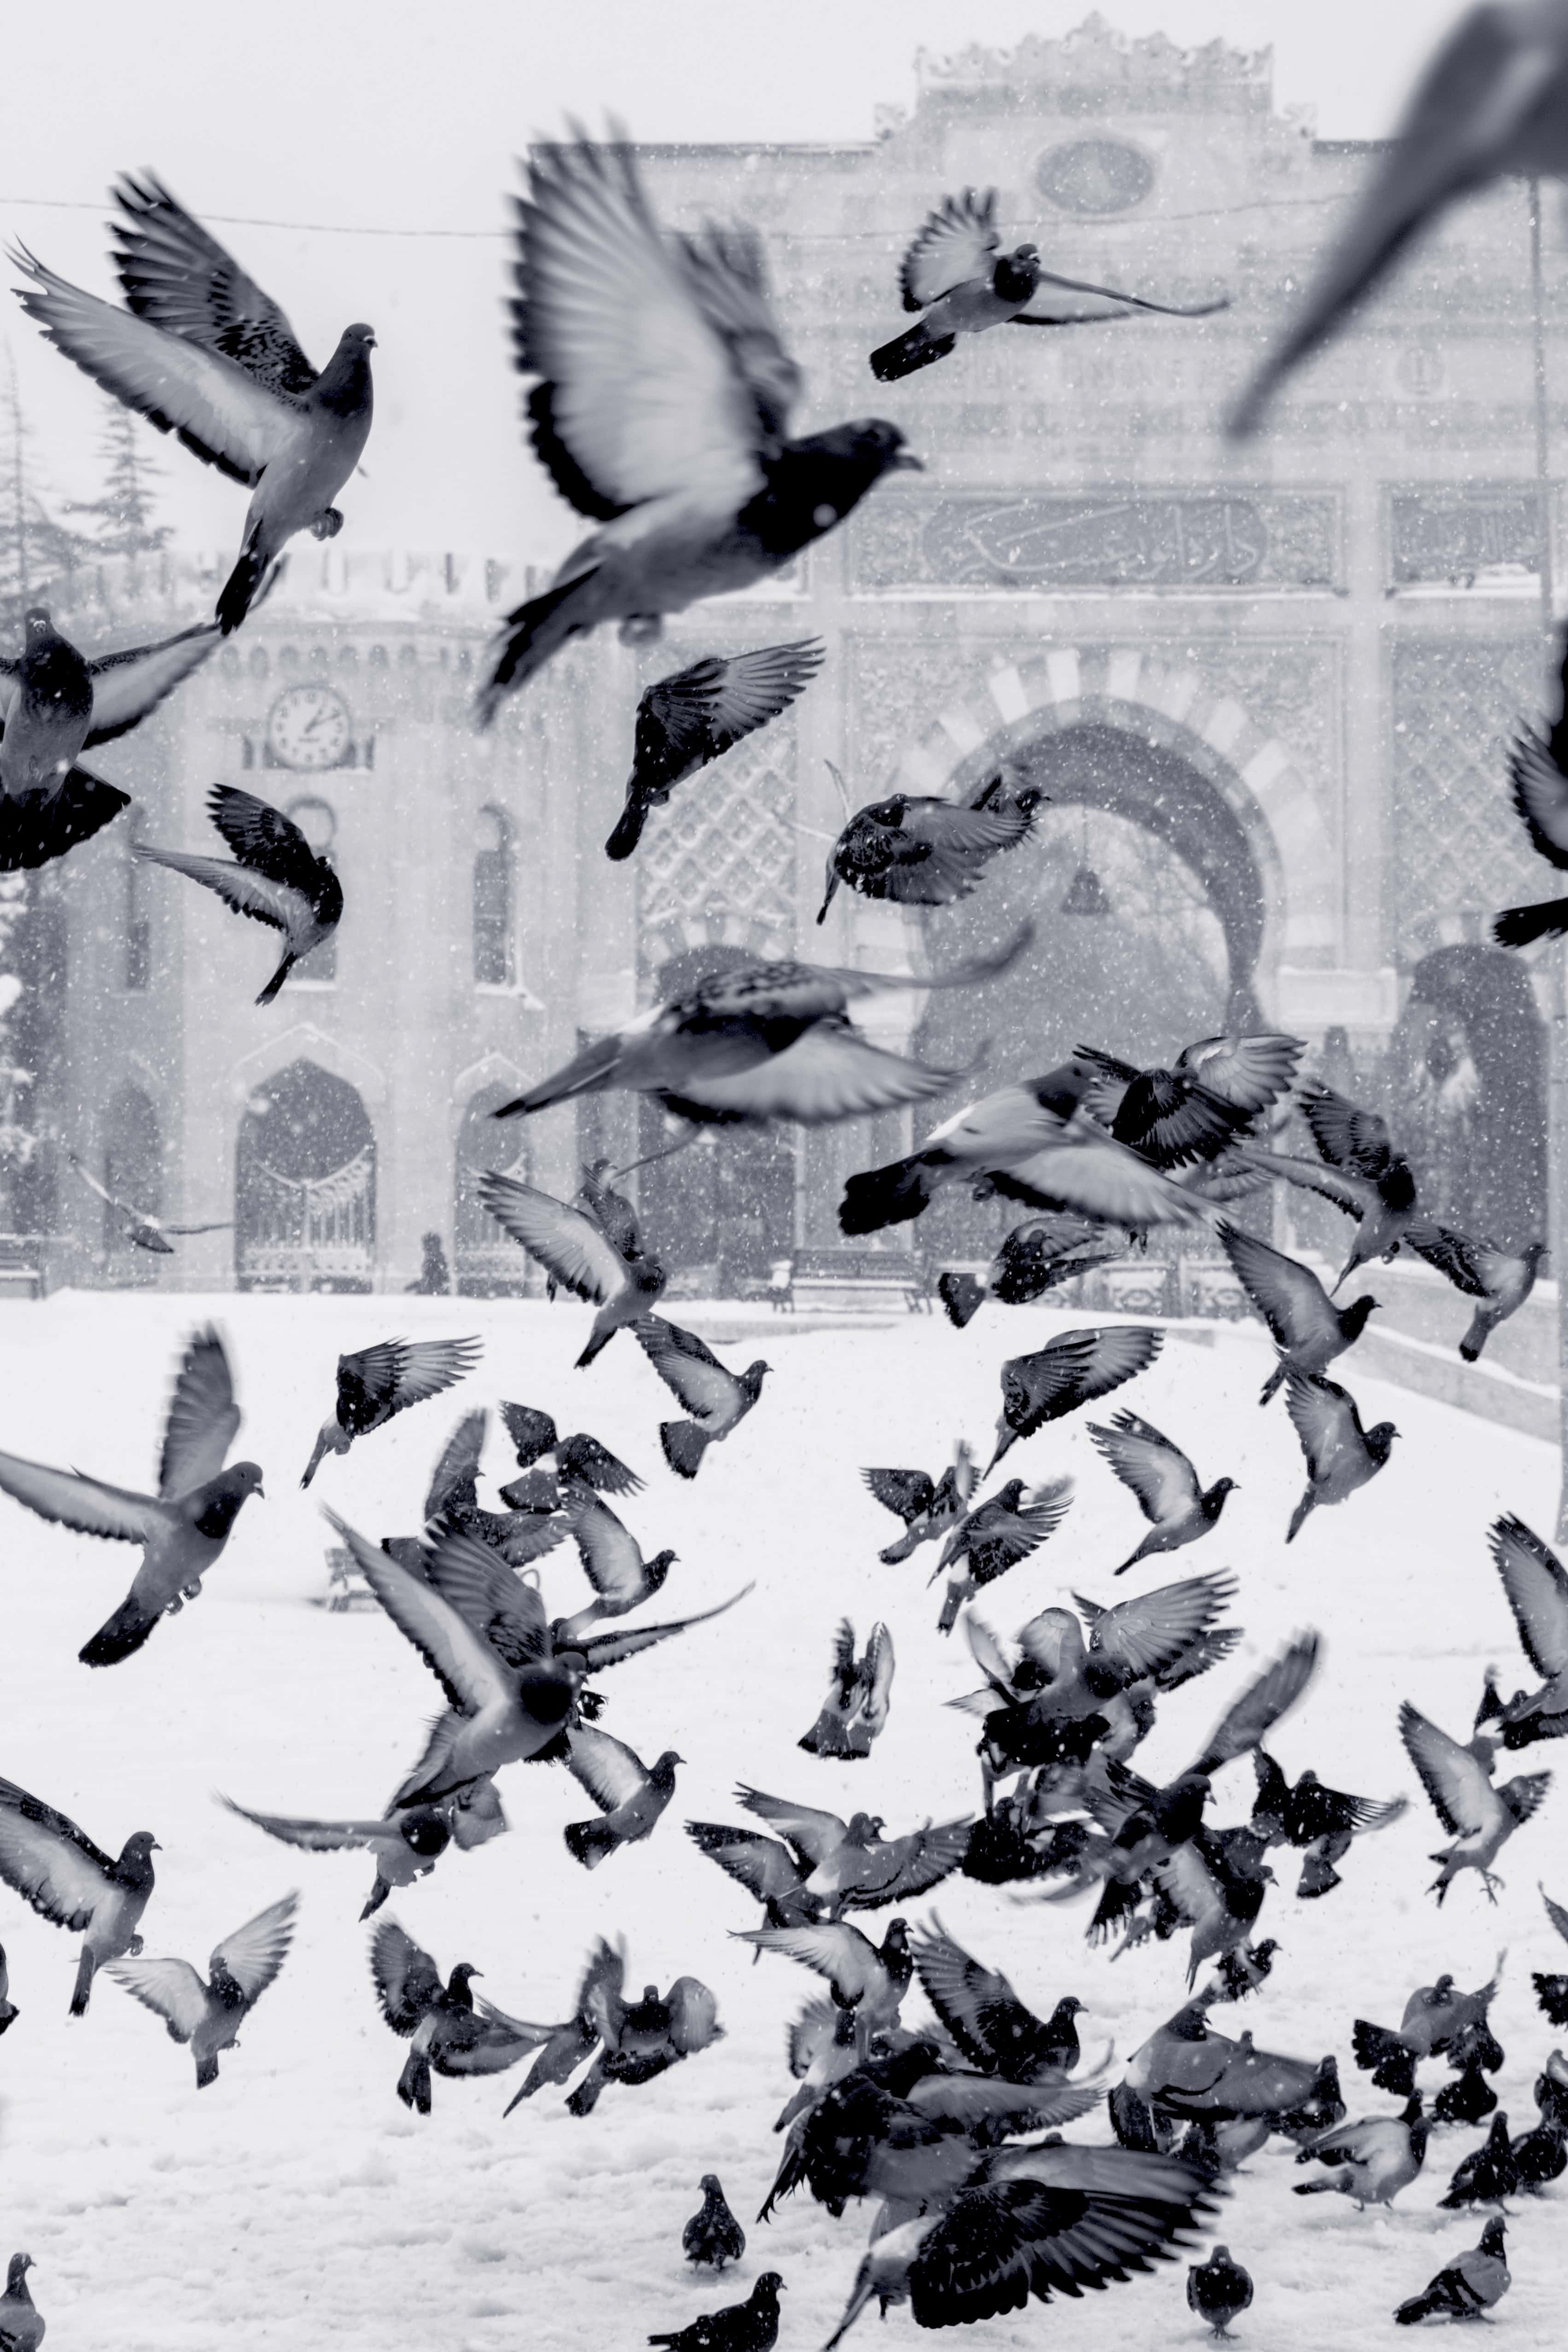 Filmmaking Trends in 2020 - An Image of Birds in Black and White